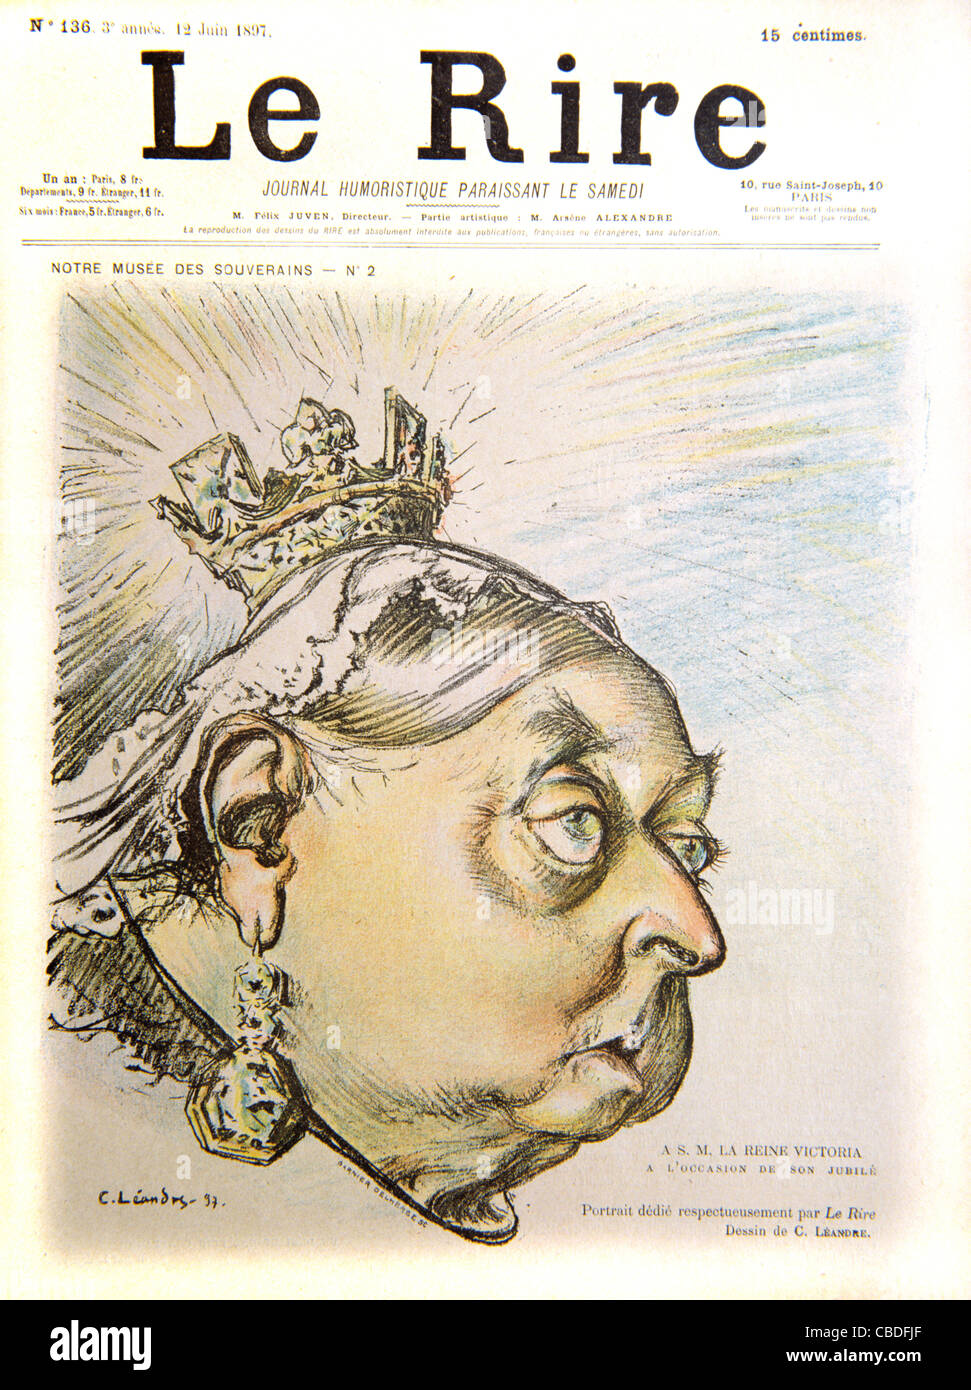 Satirical Portrait of Queen Victoria on her Sixtieth Jubilee Year. Cover of French Satirical Magazine 'Le Rire', - Stock Image